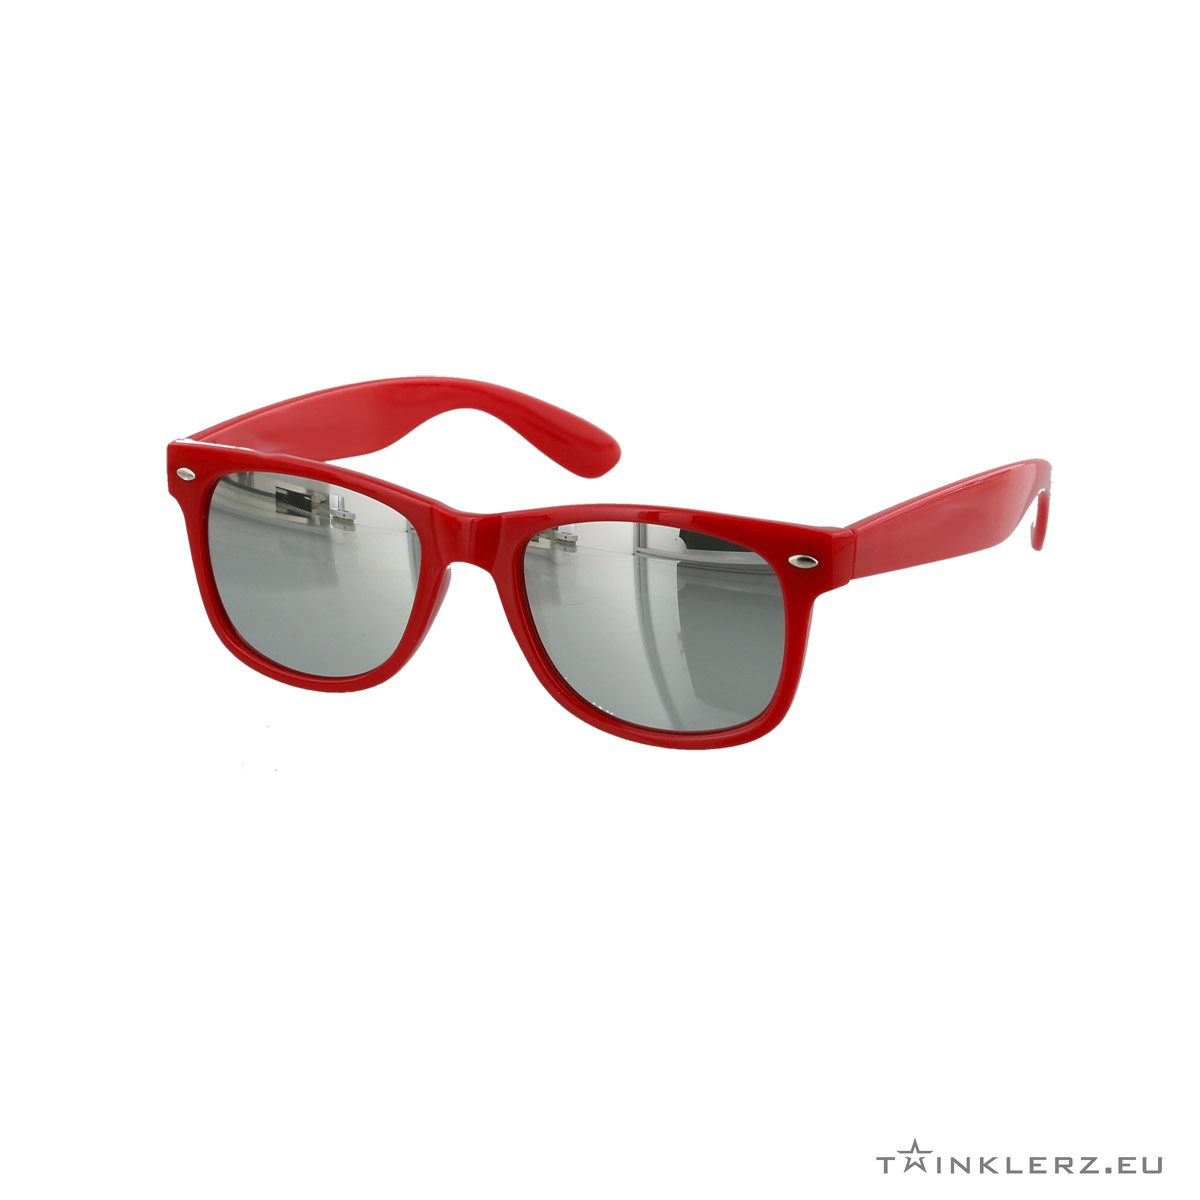 Silver mirrored red wayfarer sunglasses